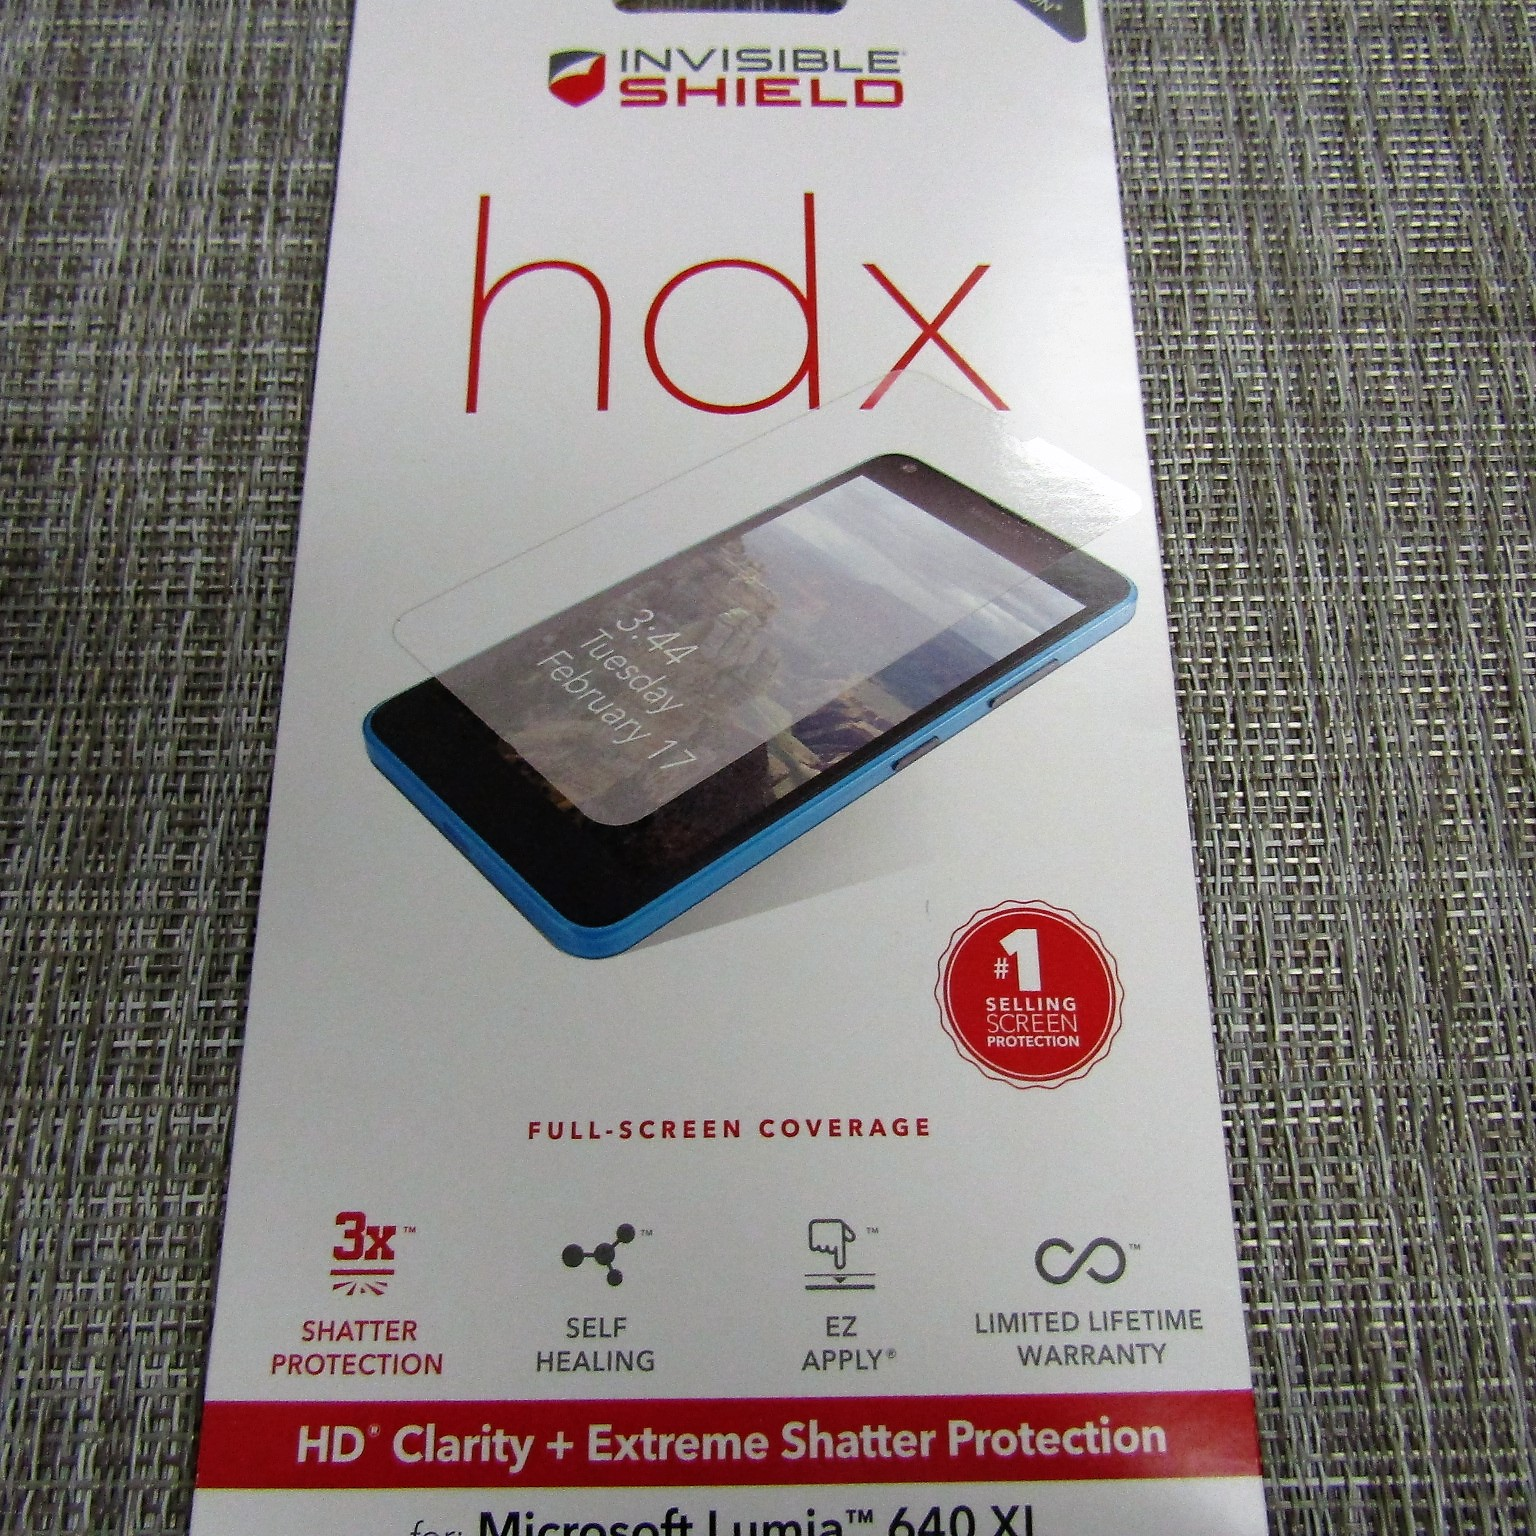 Invisible Shield hdx HD Clarity + Extreme Shatter Protection for the Microsoft Muia 640 XL